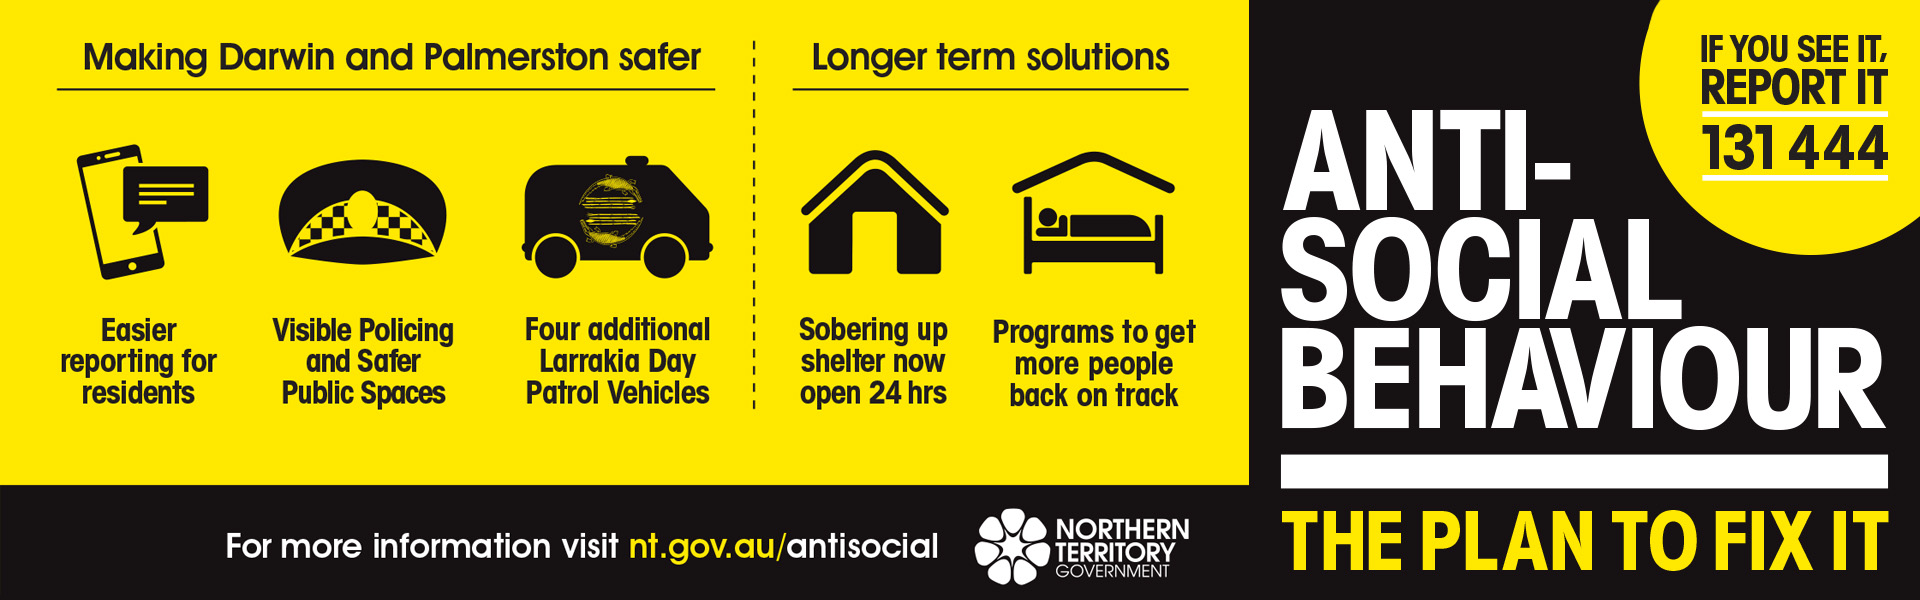 Anti-Social Behaviour Plan